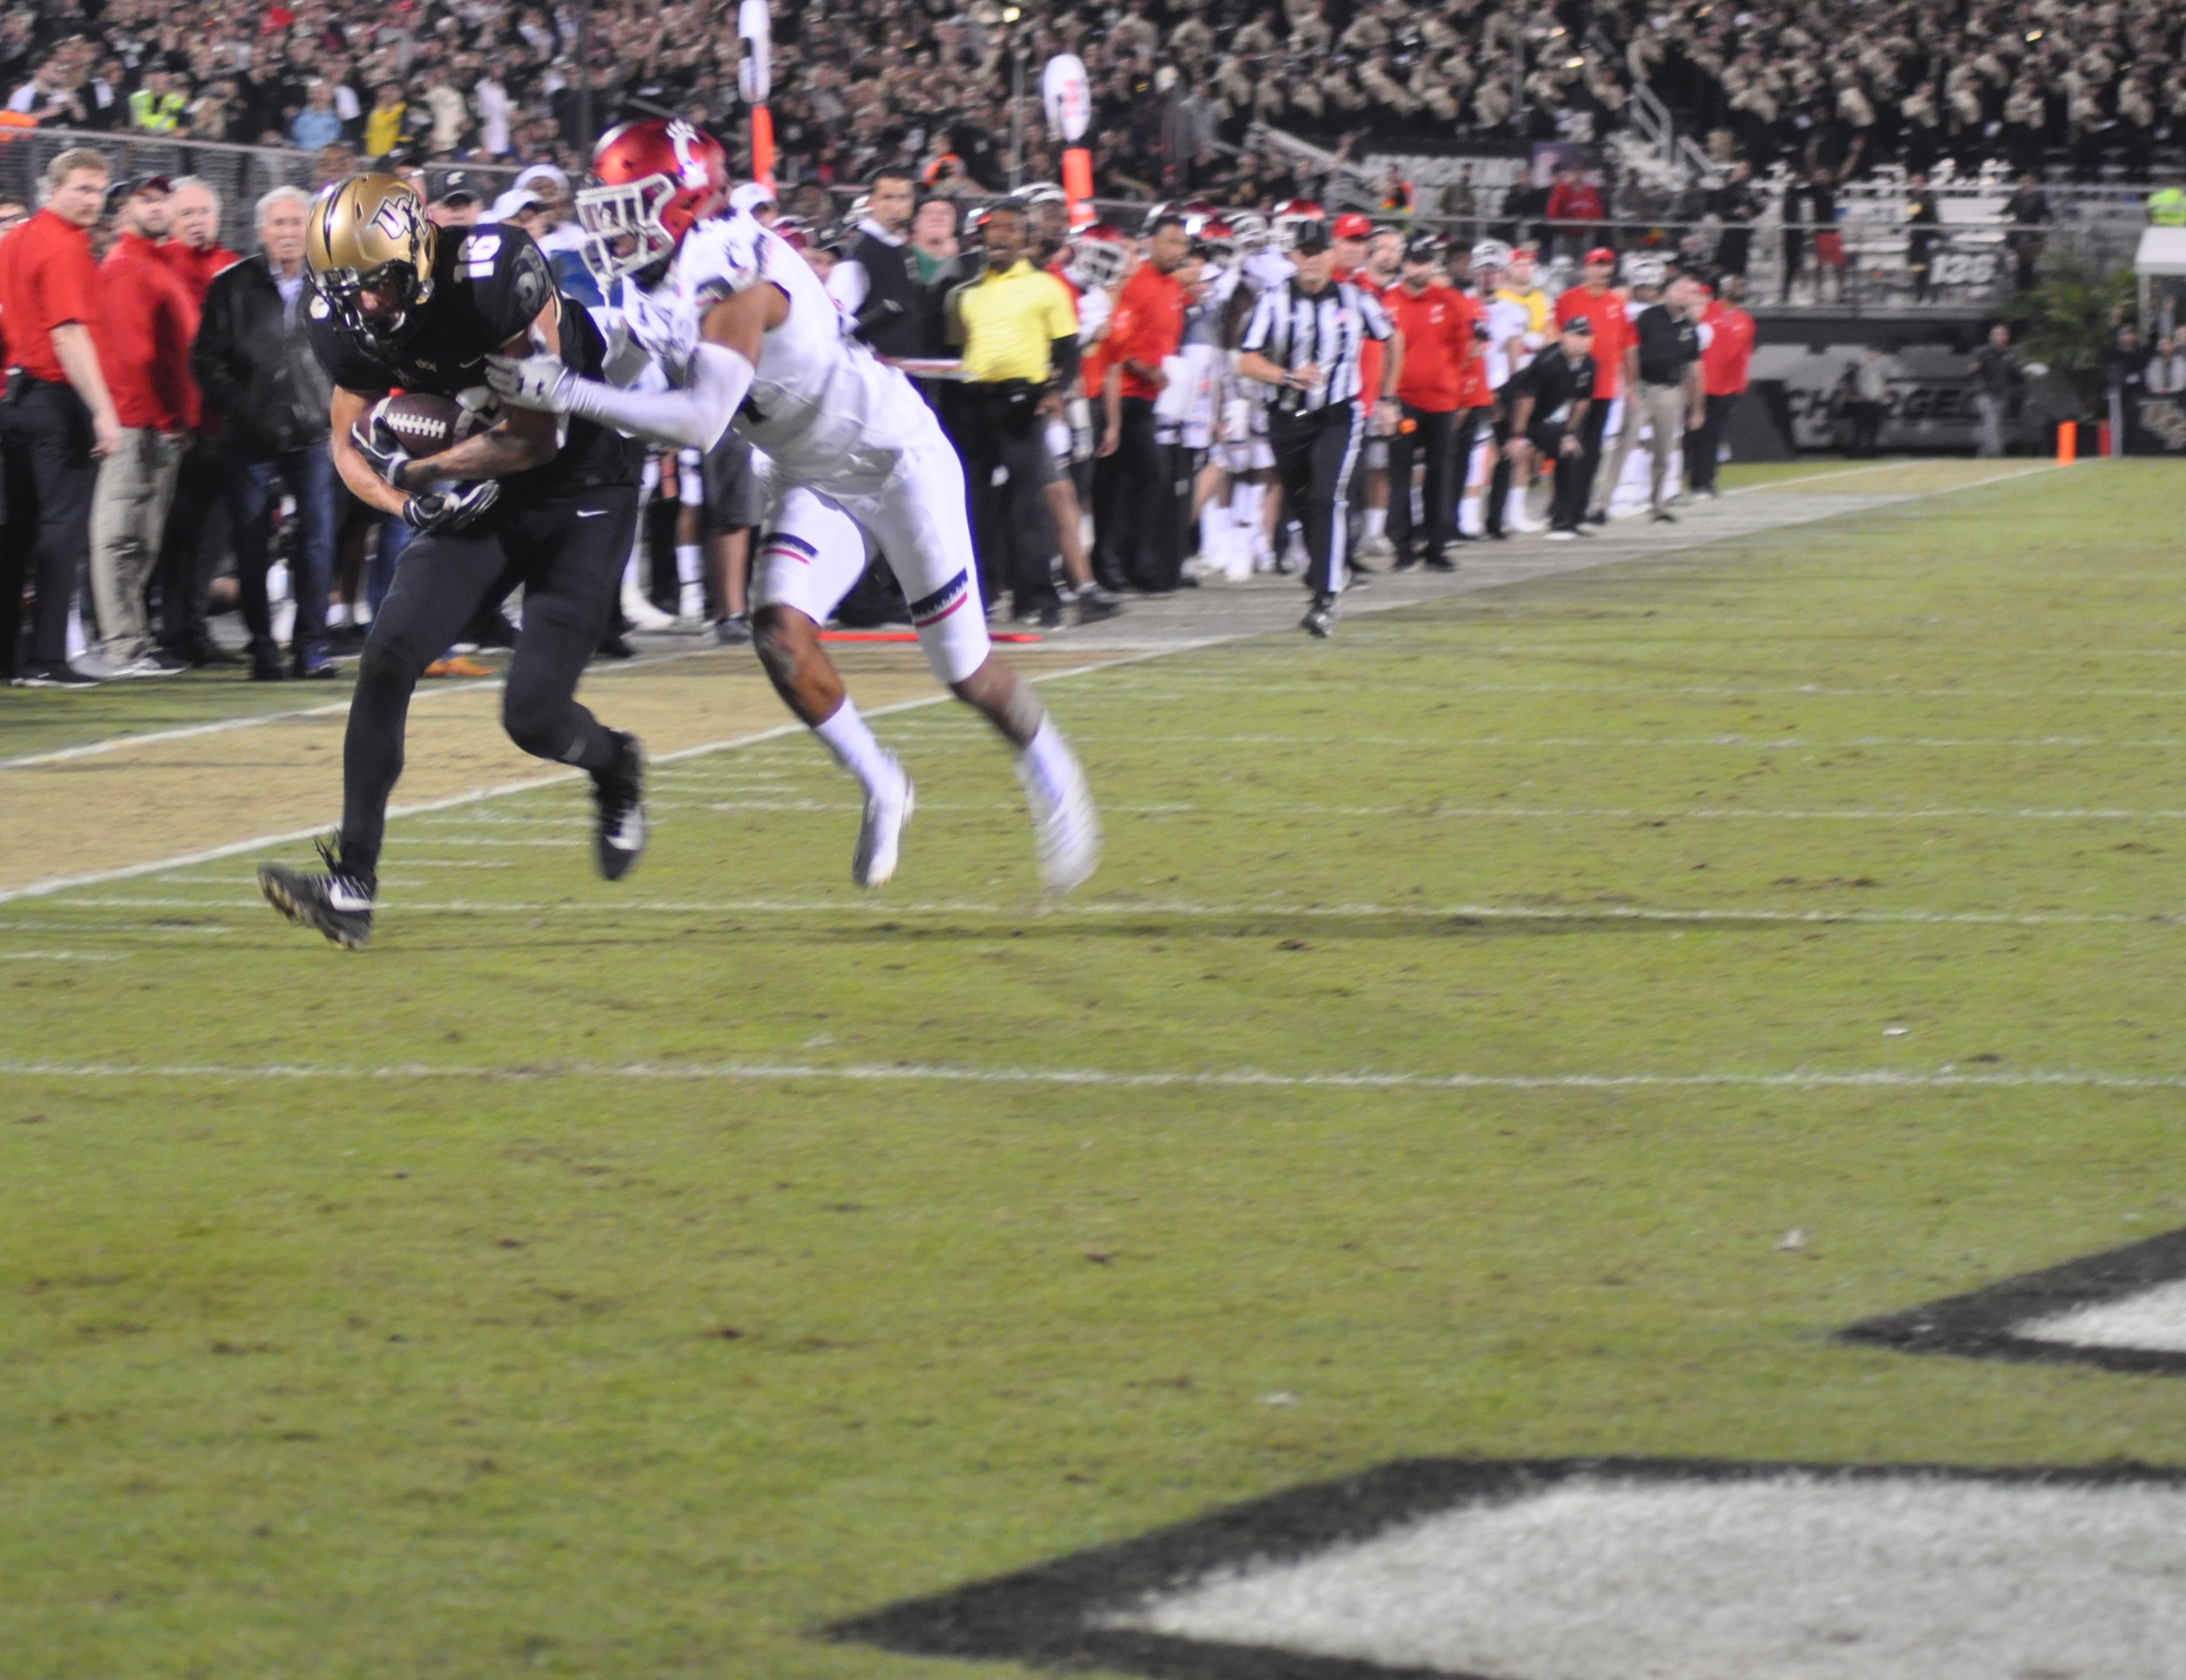 UCF Knights' Tre Nixon (#16) runs the ball into the end zone for a touchdown against the Cincinnati Bearcats at Spectrum Stadium Saturday night. Photo: Florida National News.